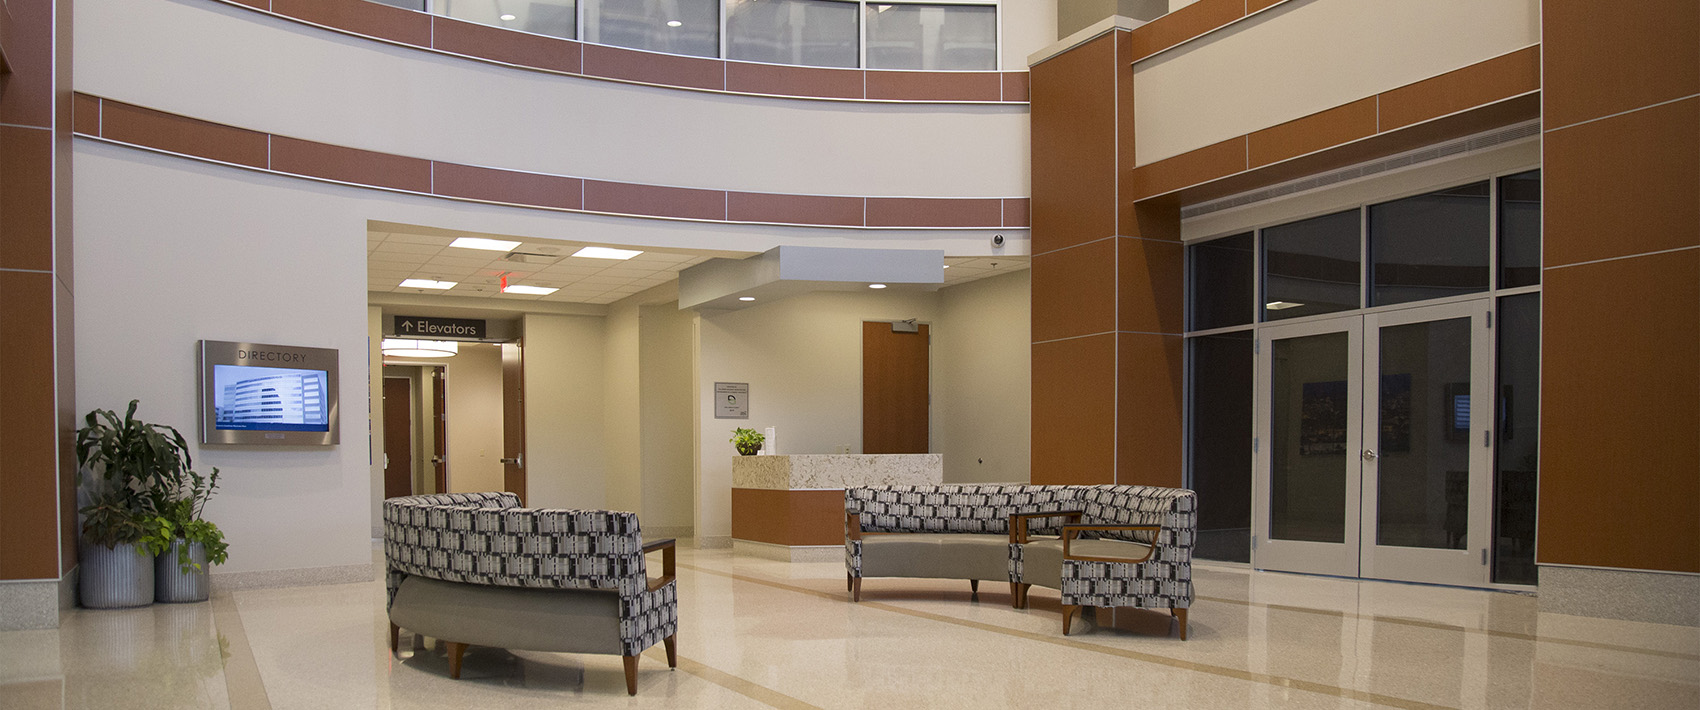 Grandview Physicians Plaza